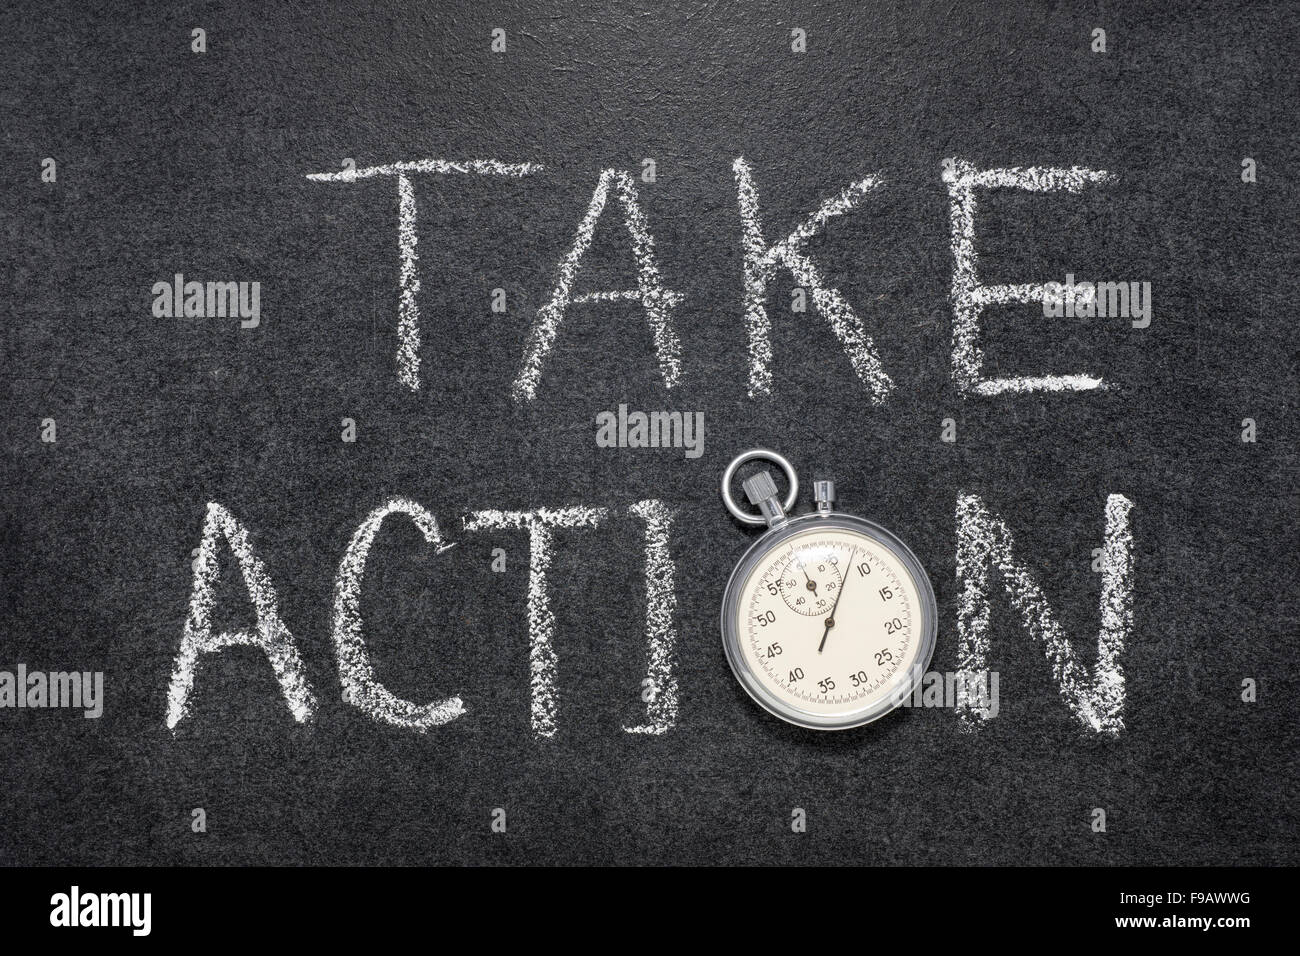 take action phrase handwritten on chalkboard with vintage precise stopwatch used instead of O - Stock Image